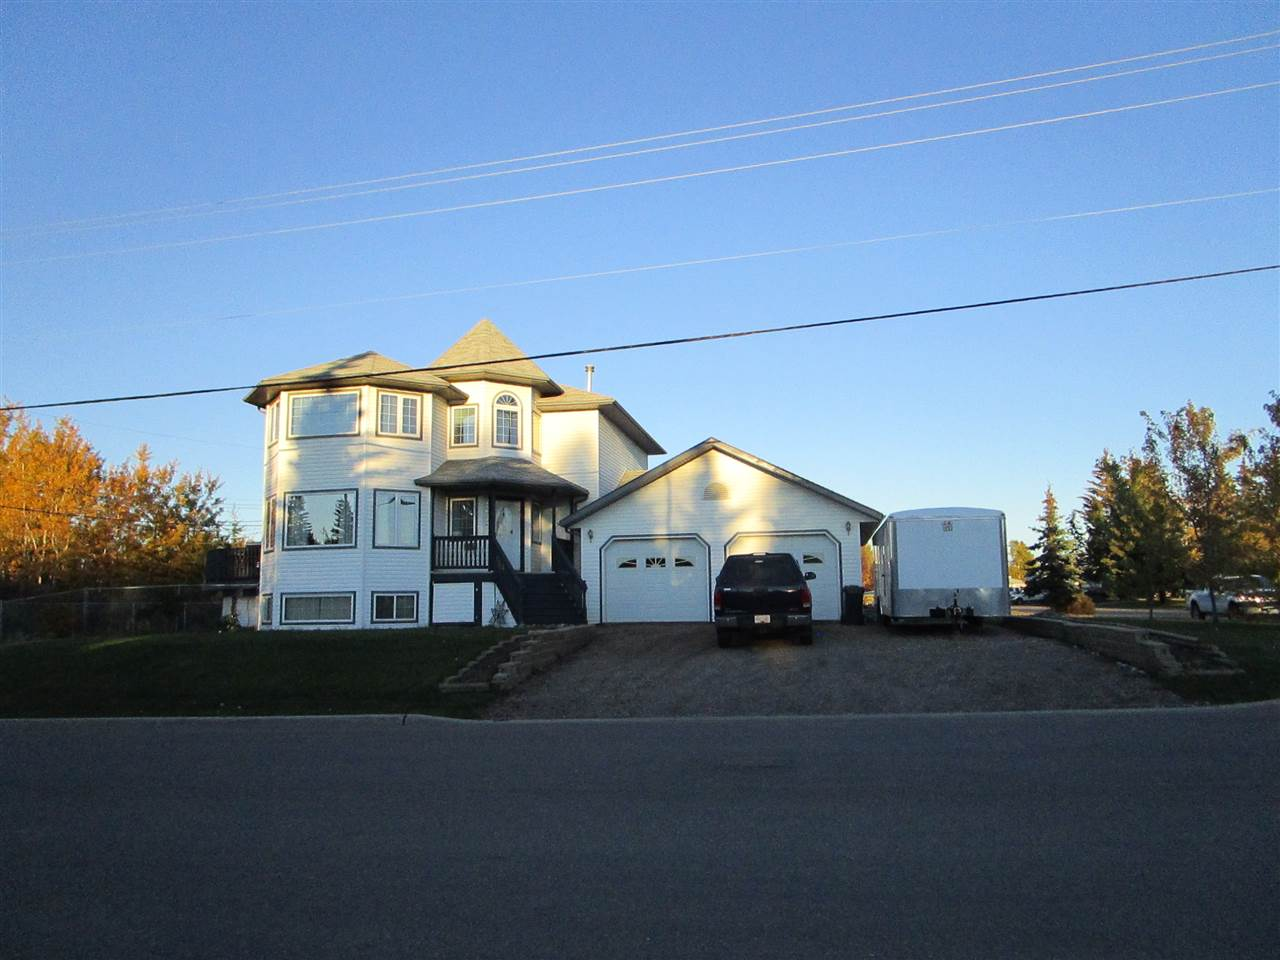 "Main Photo: 11603 93RD Street in FT ST JOHN: Fort St. John - City NE House for sale in ""KIN PARK"" (Fort St. John (Zone 60))  : MLS®# N243979"